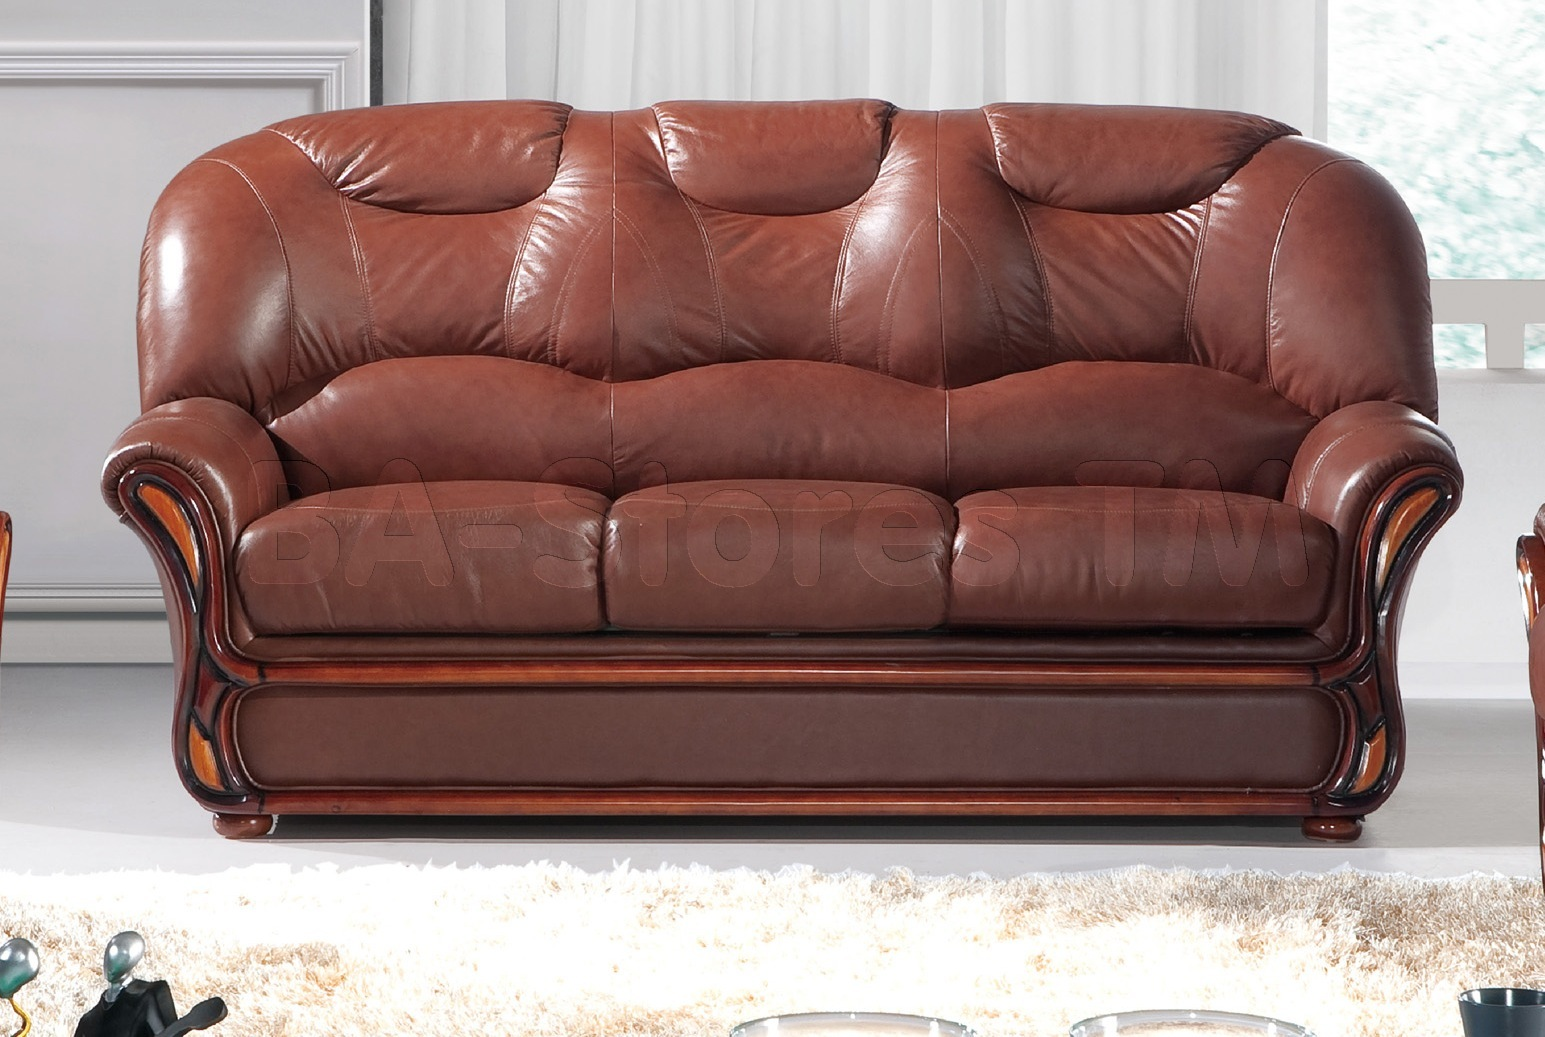 chair sofa beds universal covers click clack bed modern leather